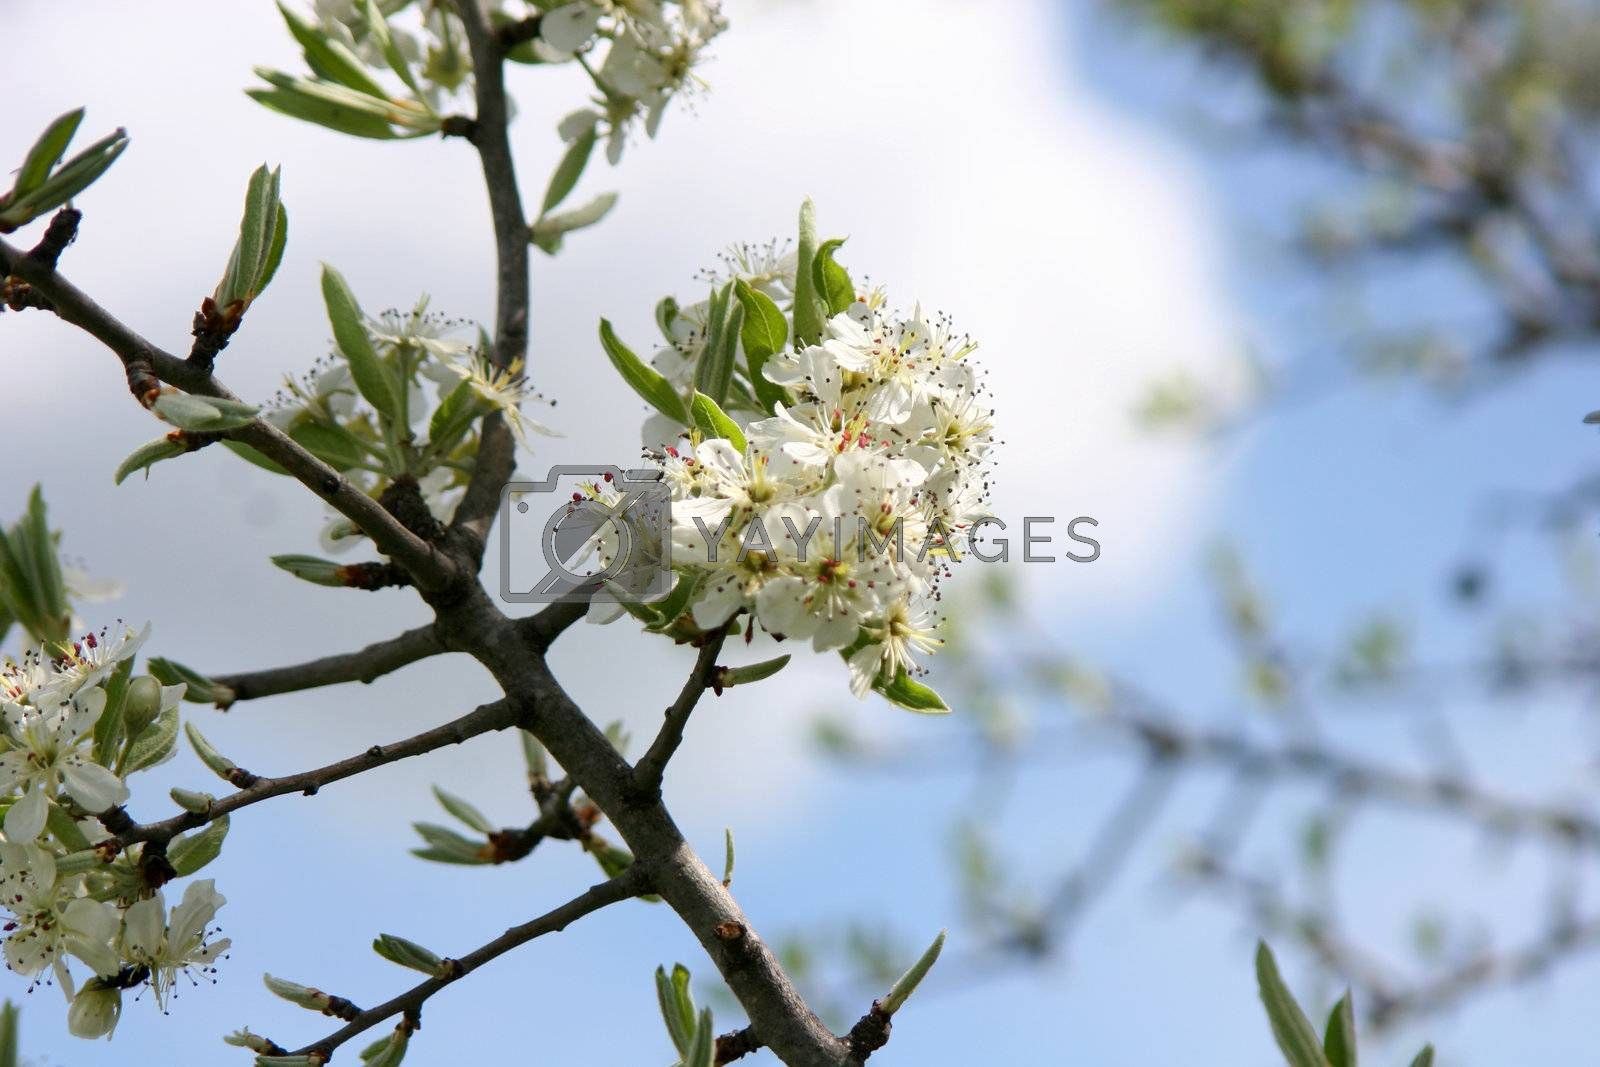 white flowers, branch, tree, peach, Wildflower, Wild springtime season, meadow, plant park, Outdoor, Nature, lush, leaf, meadow, blossom, blooming, growing, green, grass, garden fresh flowers, flowerbed, flower, floral, wildflower, grass , environment, colorful,